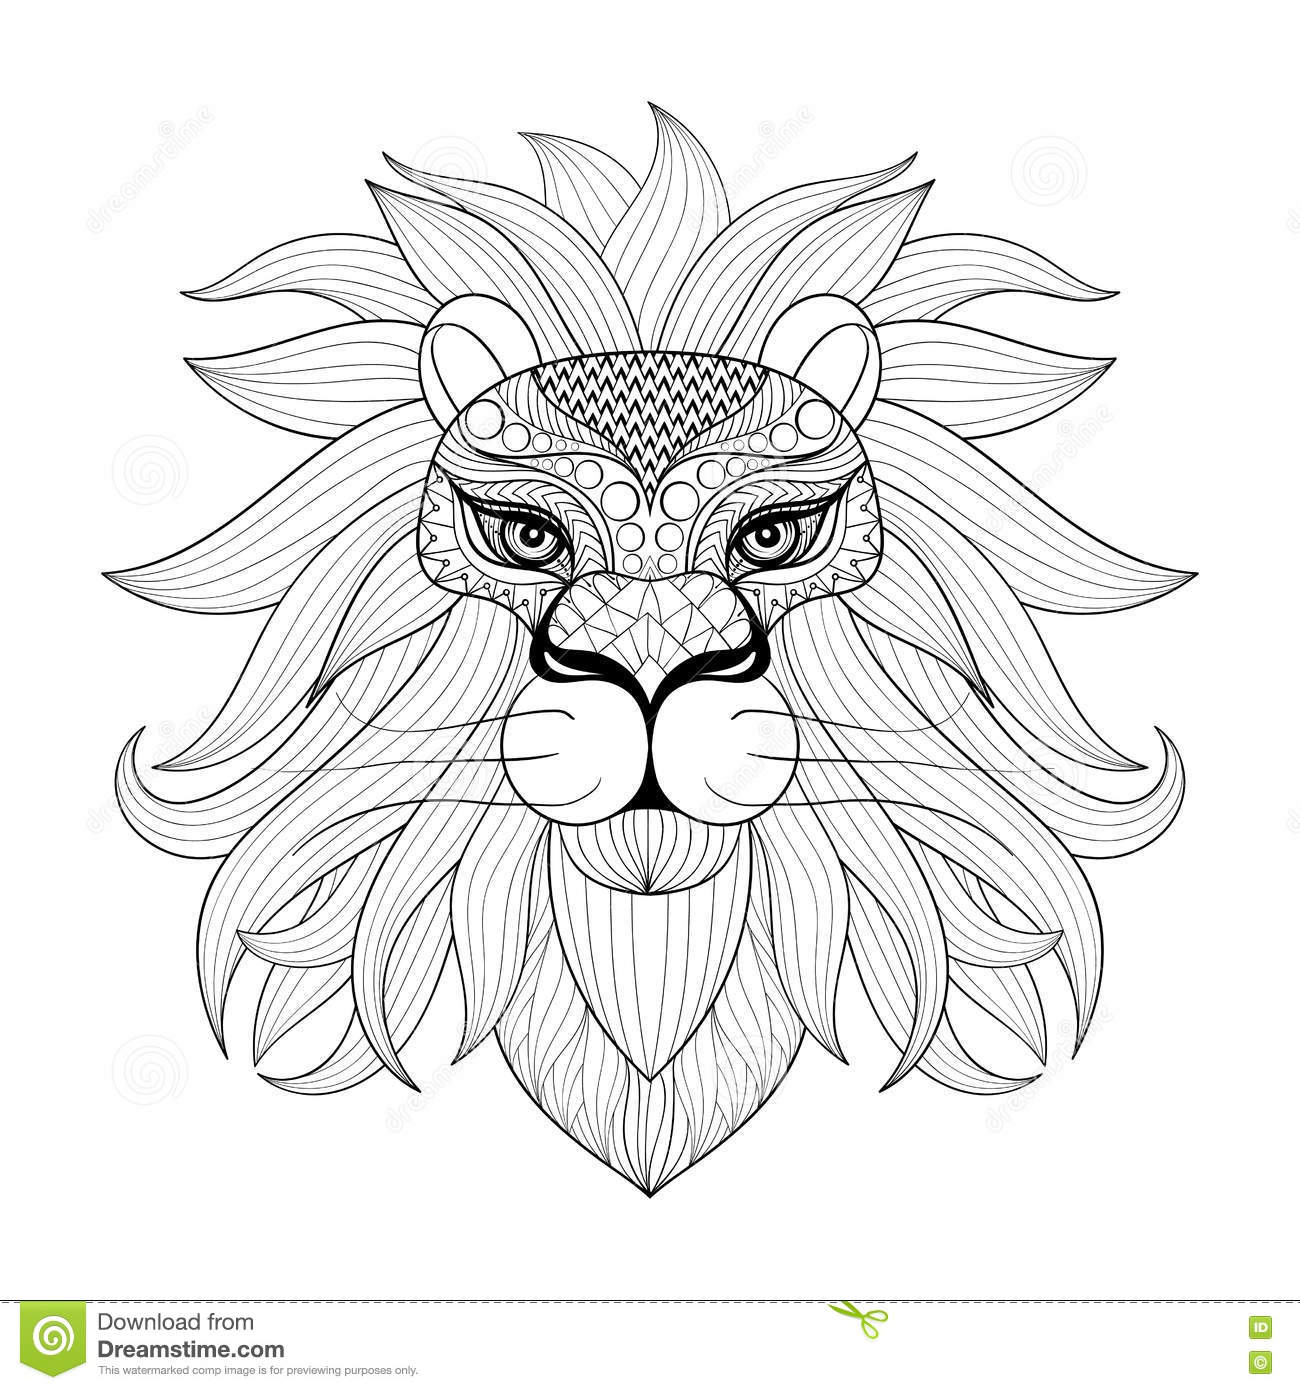 P 40 coloring pages - Hand Drawn Zentangle Ornamental Lion For Adult Coloring Pages P